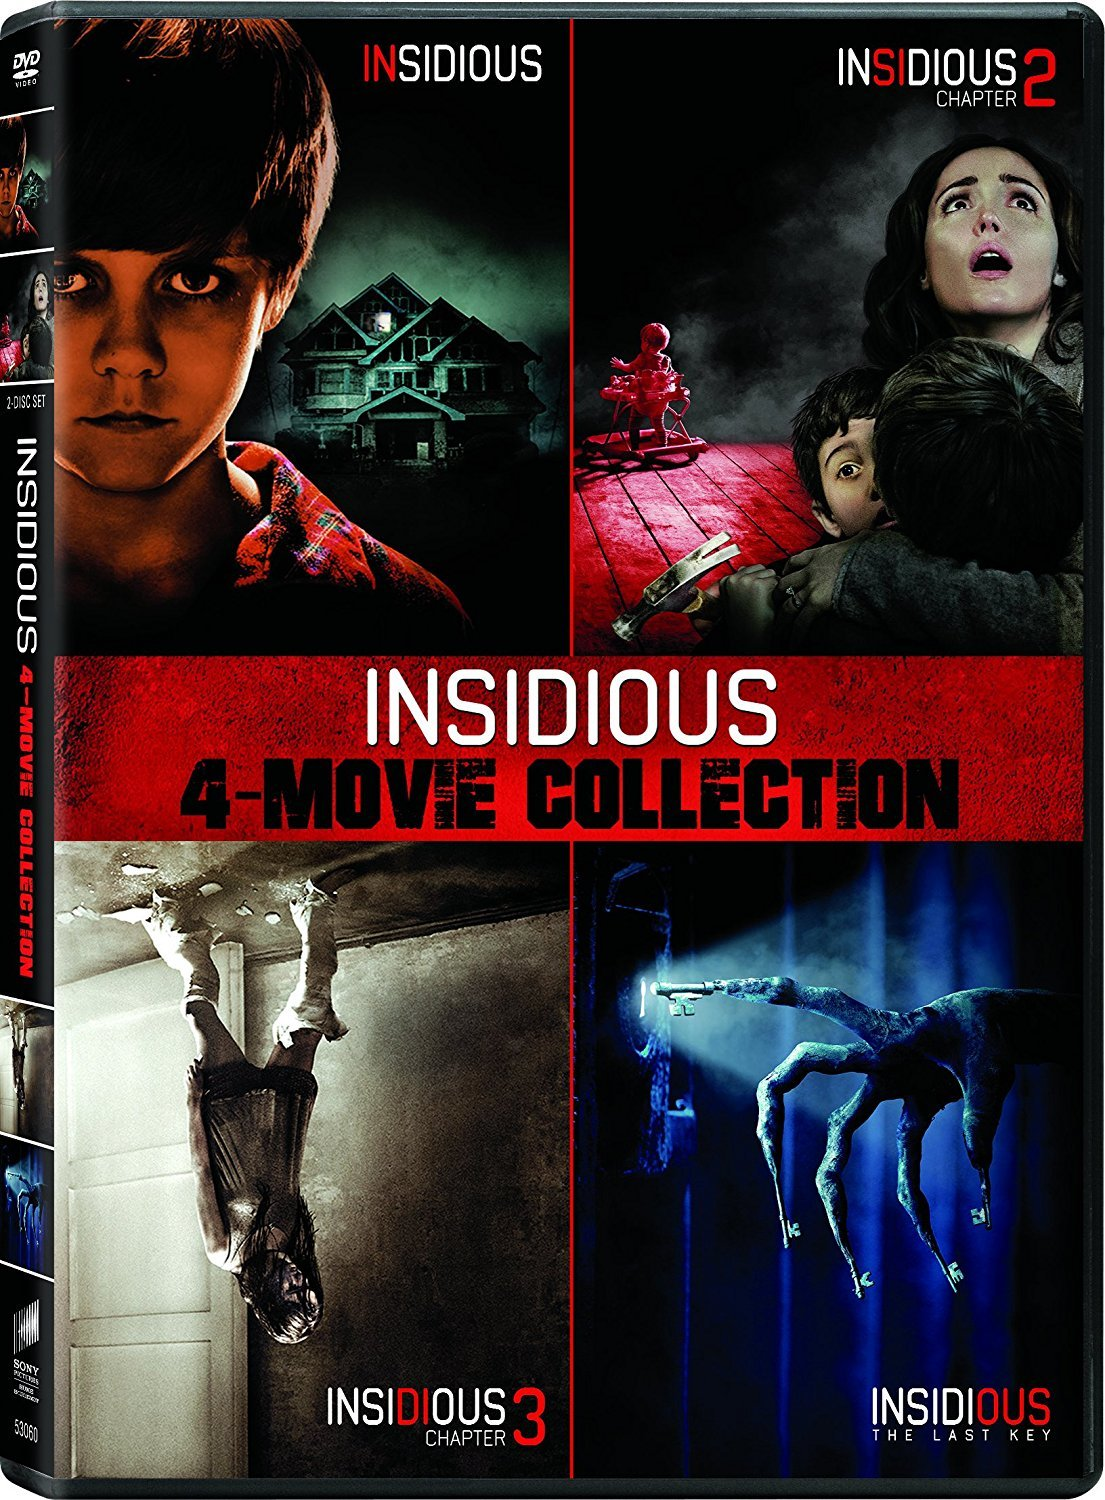 Insidious: 4-Movie Collection DVD Release Date April 3, 2018 ...